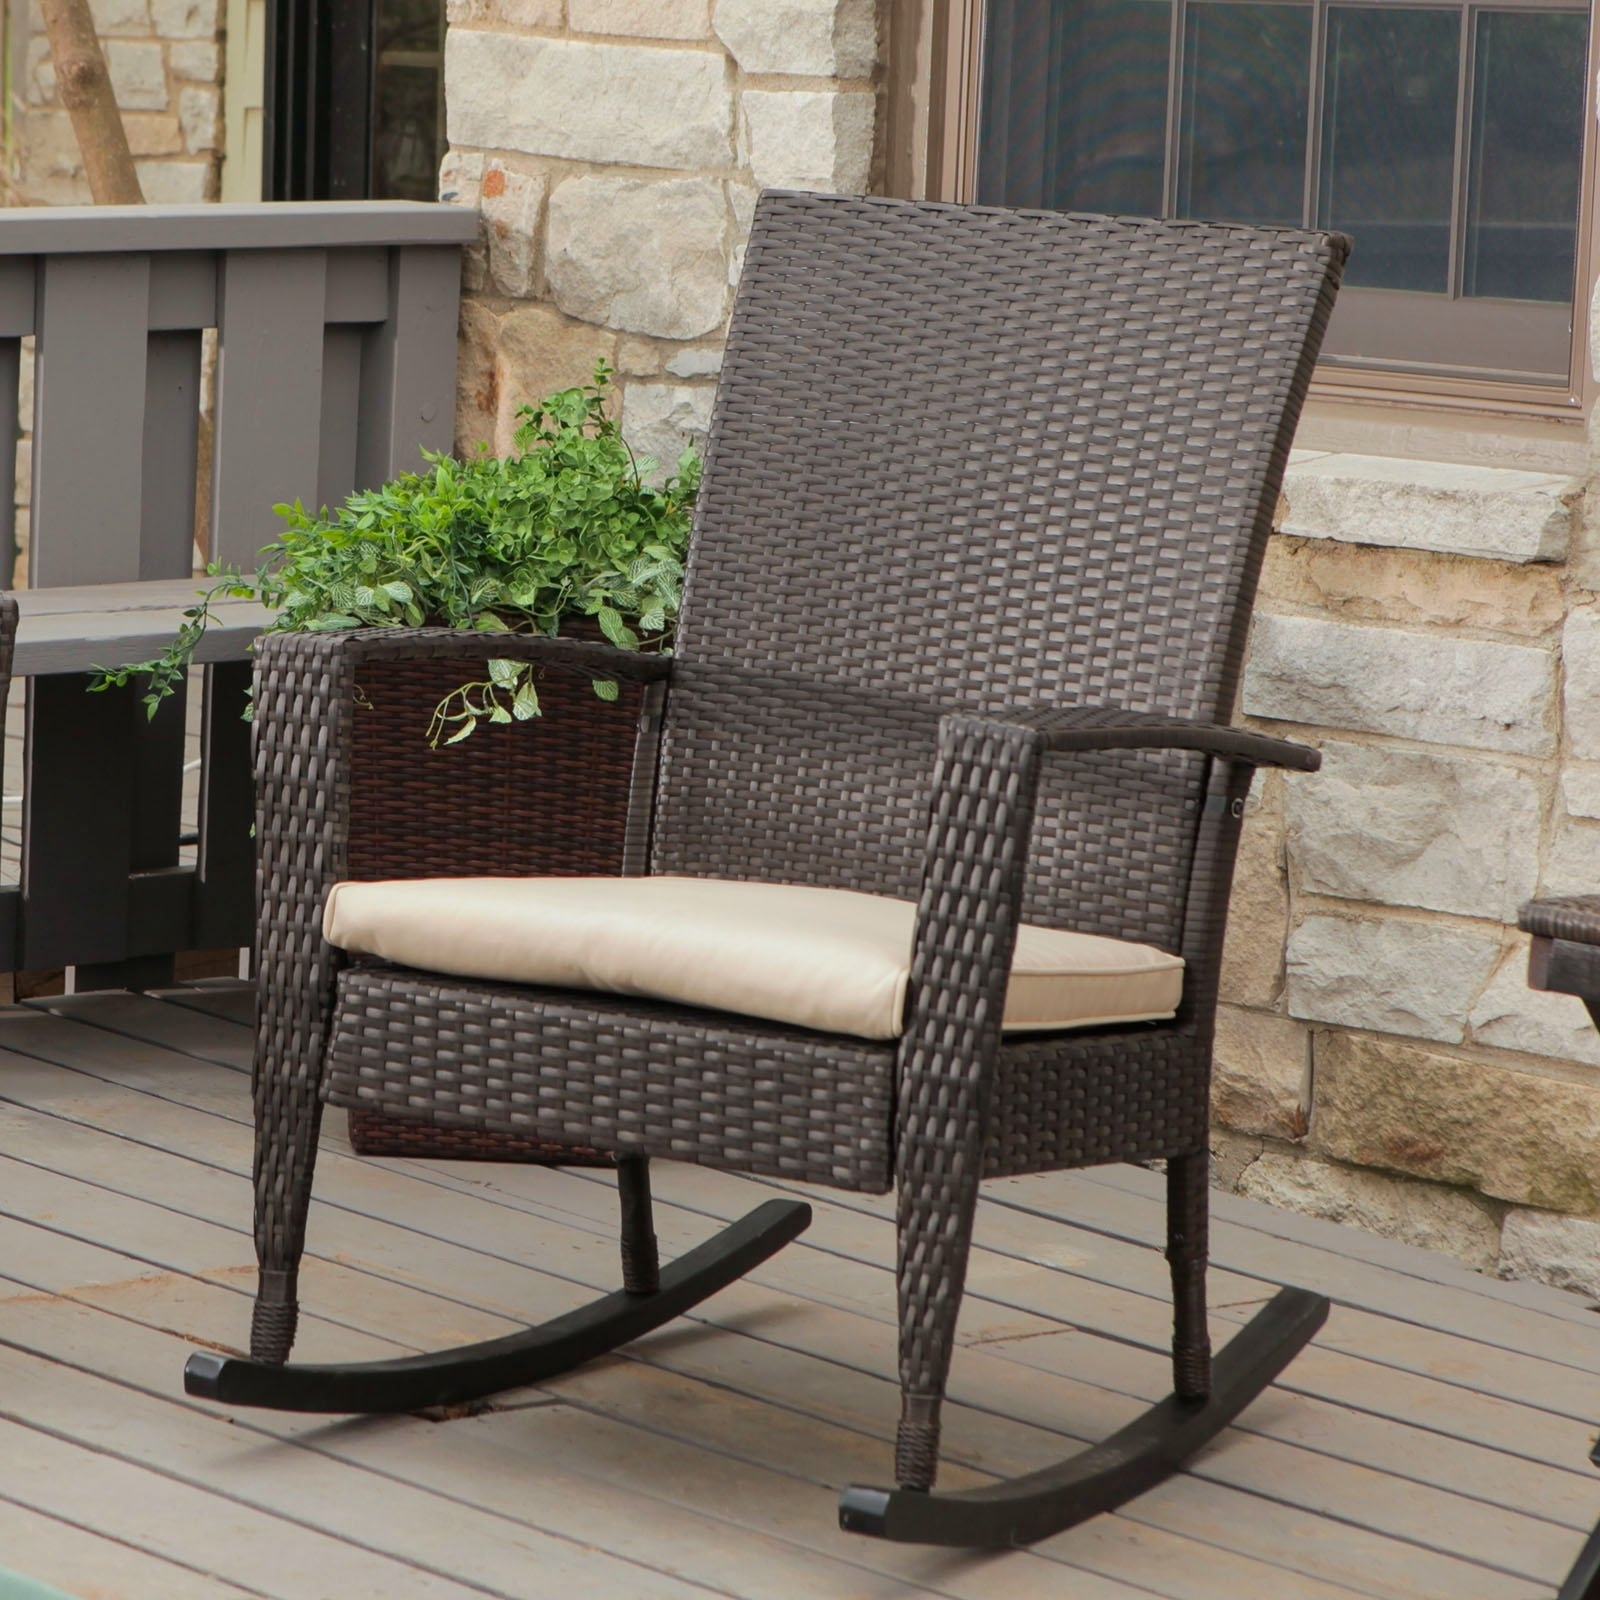 Spectacular And Sensational Patio Rocking Chairs (View 14 of 20)